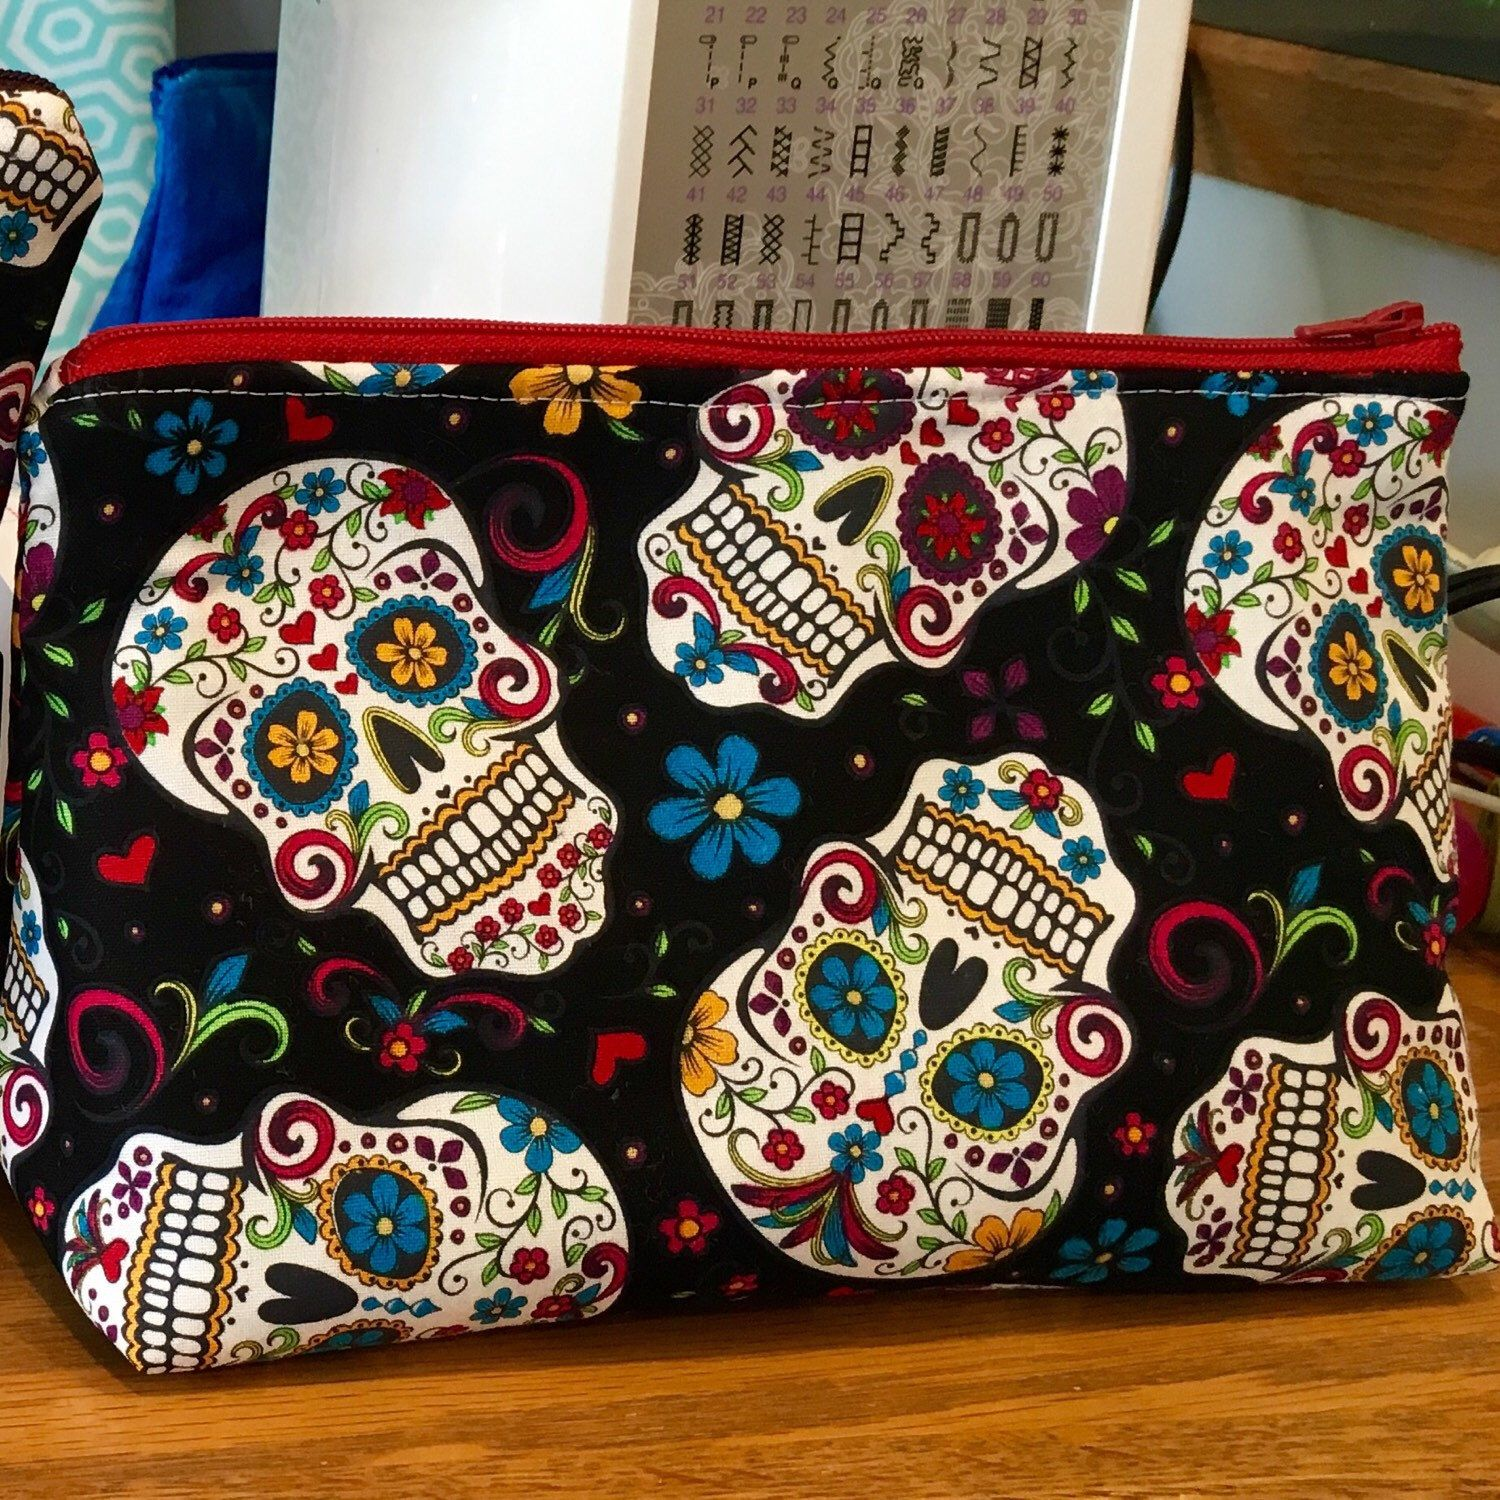 In love with this new sugar skull fabric! Super cute, right?!